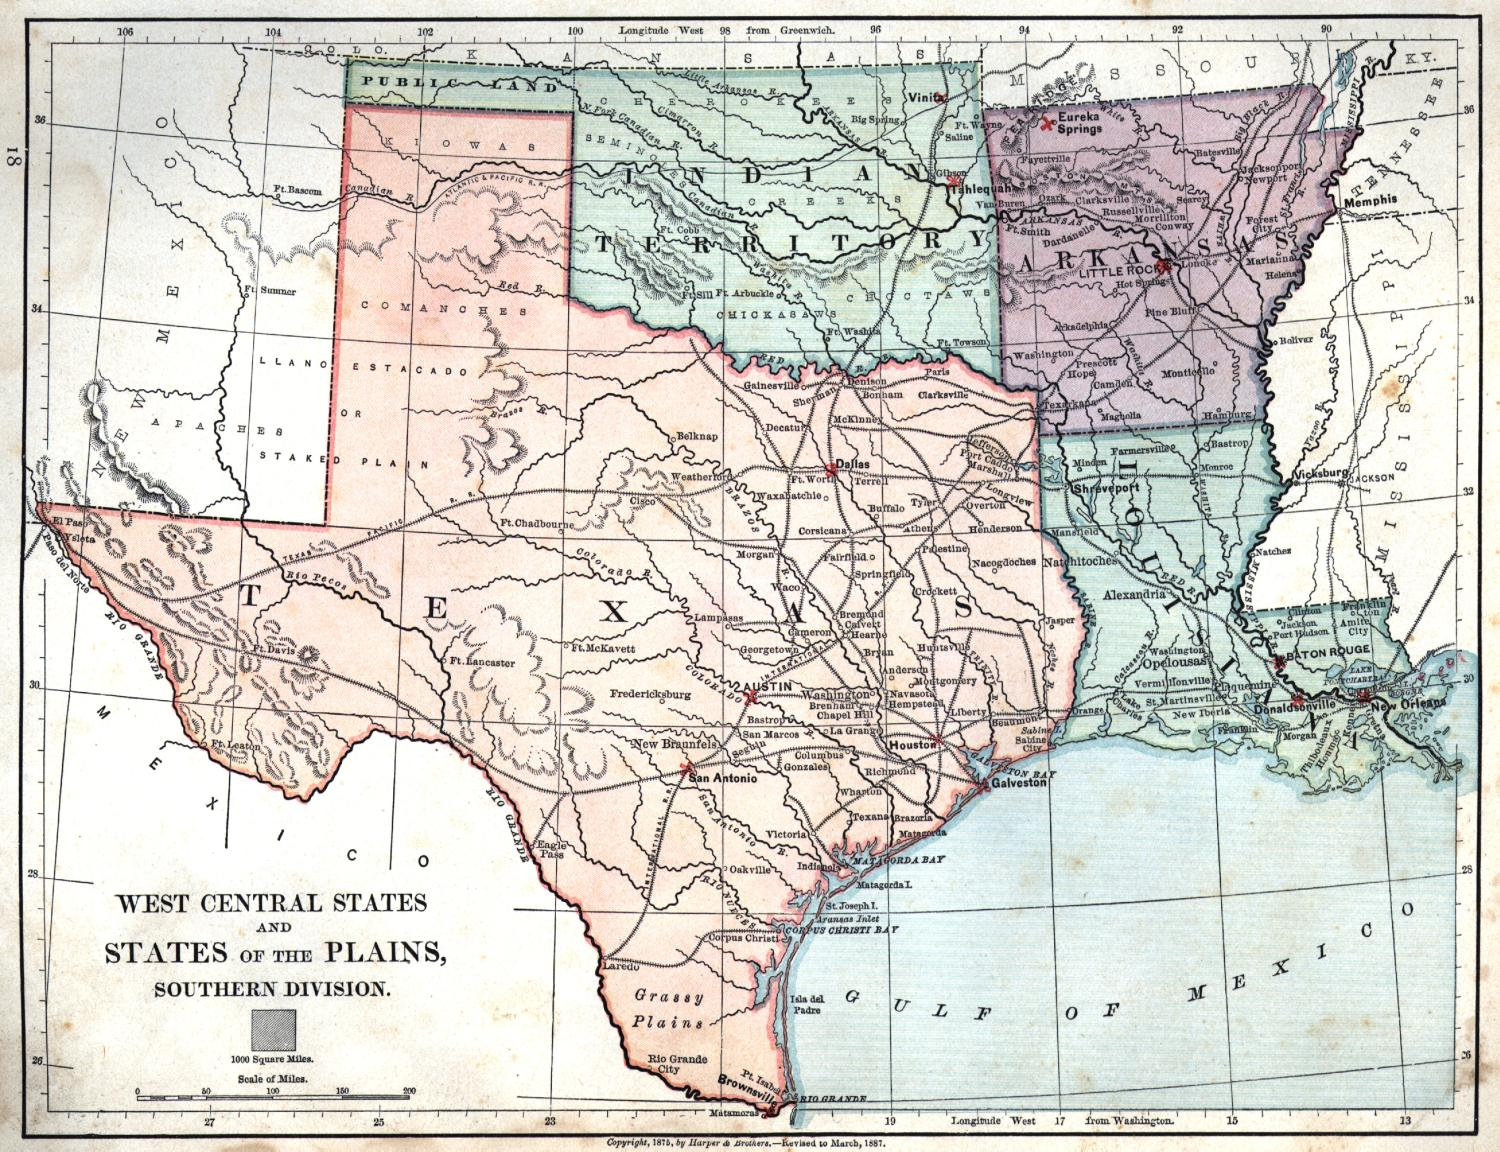 Map Of Louisiana And Texas With Cities My blog